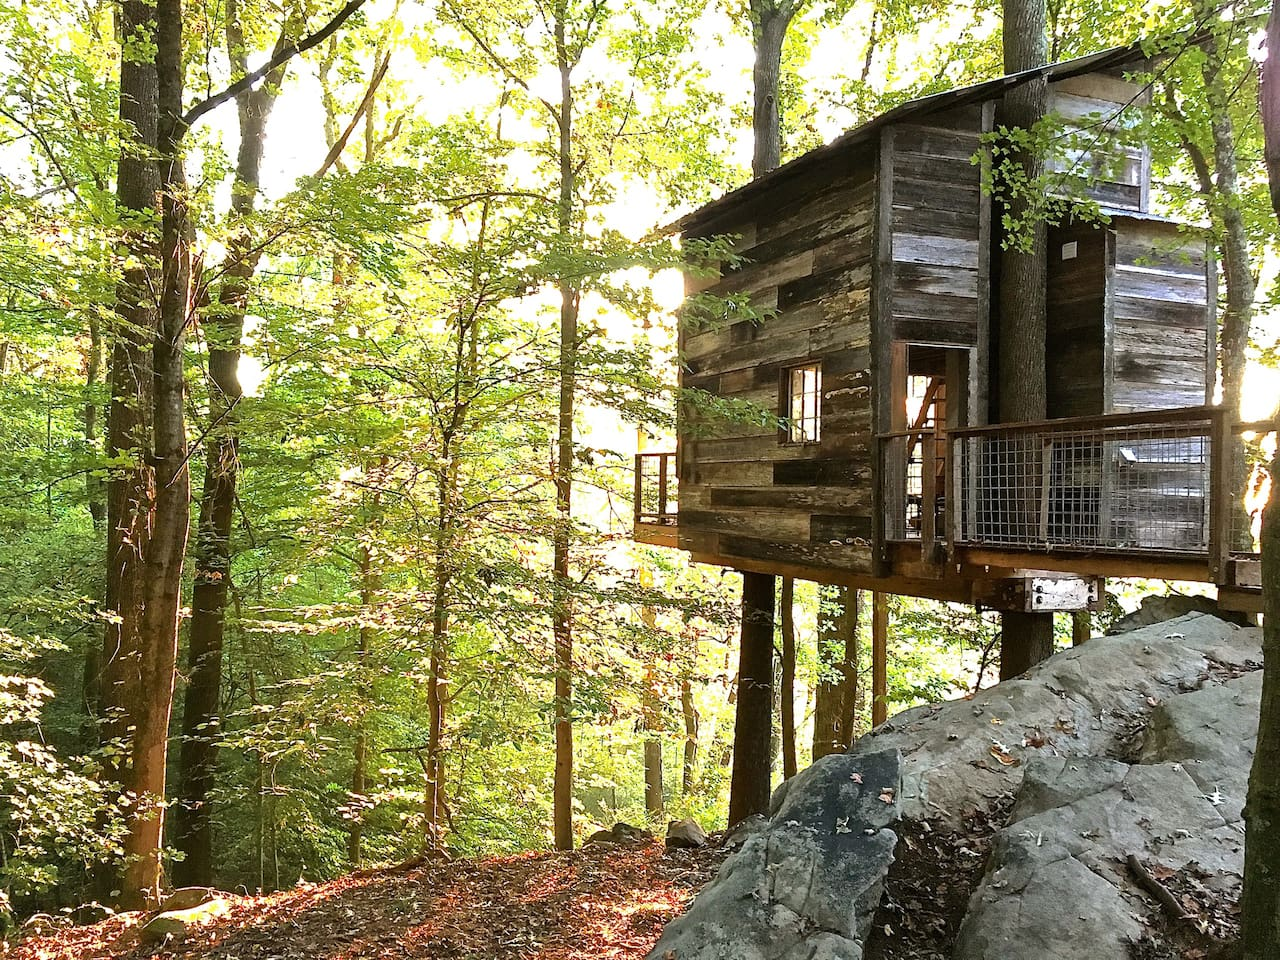 Secluded Tree House near to the Appalachian Mountains, Georgia